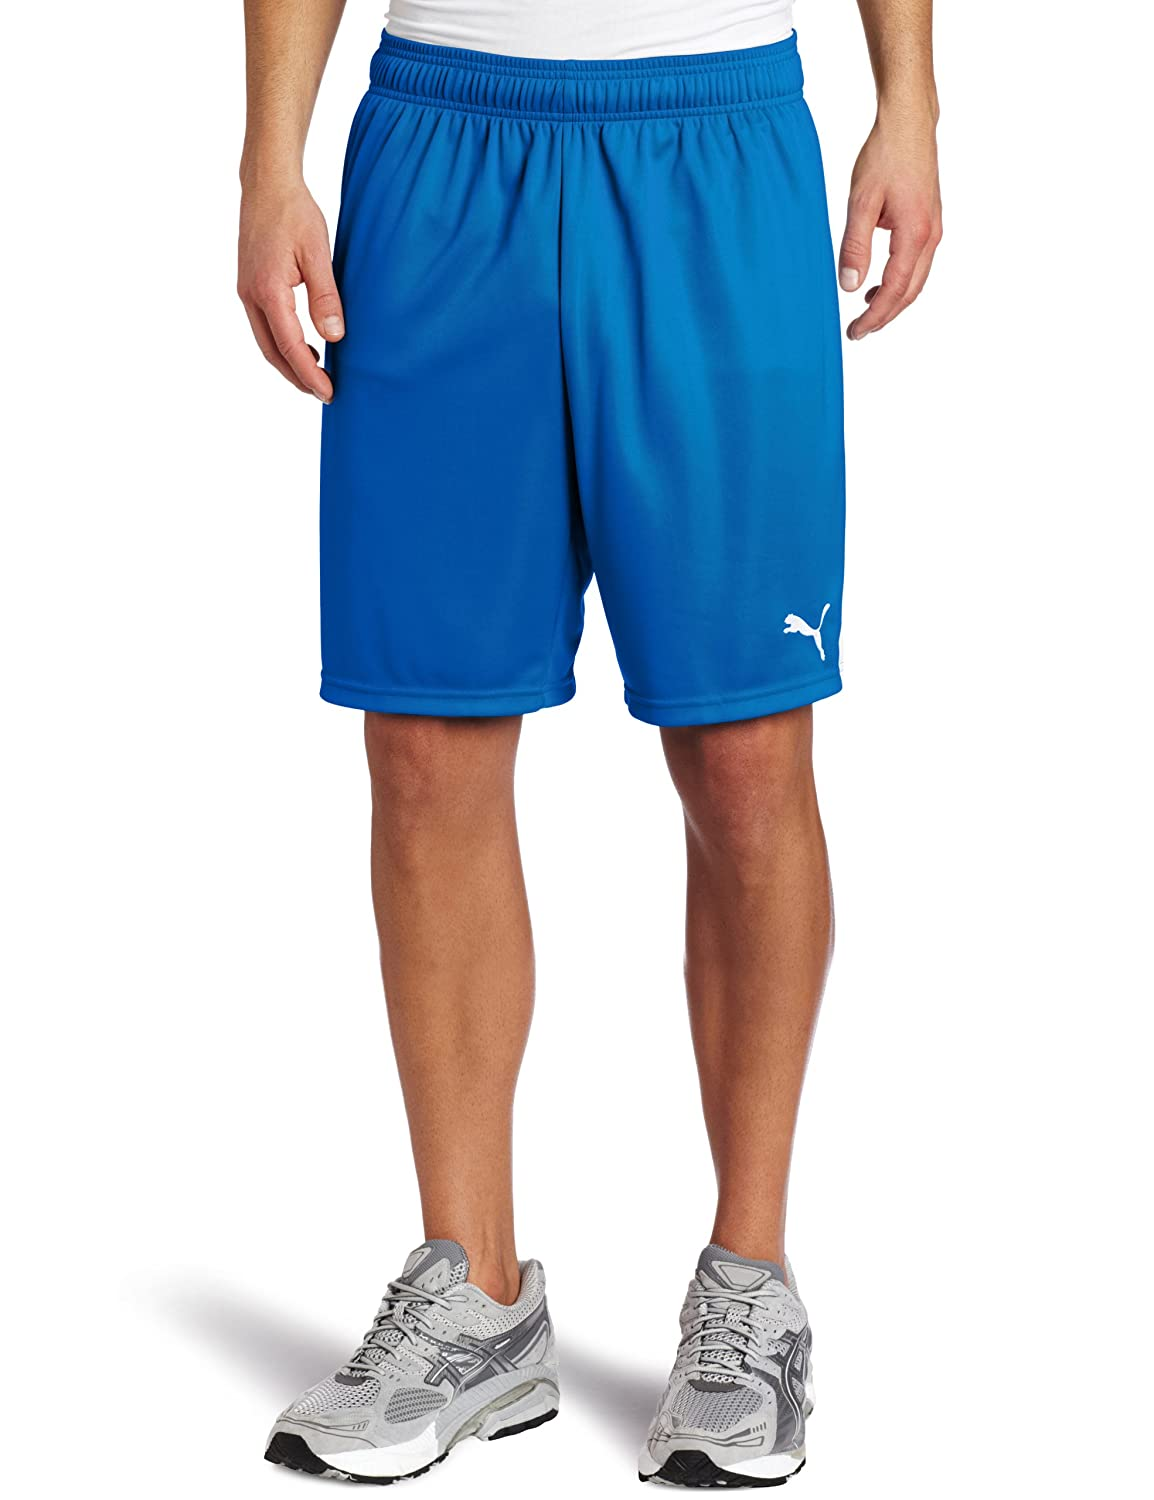 Puma Men's Team Shorts without Inner Slip, Youth Large, Puma Royal-Weiß